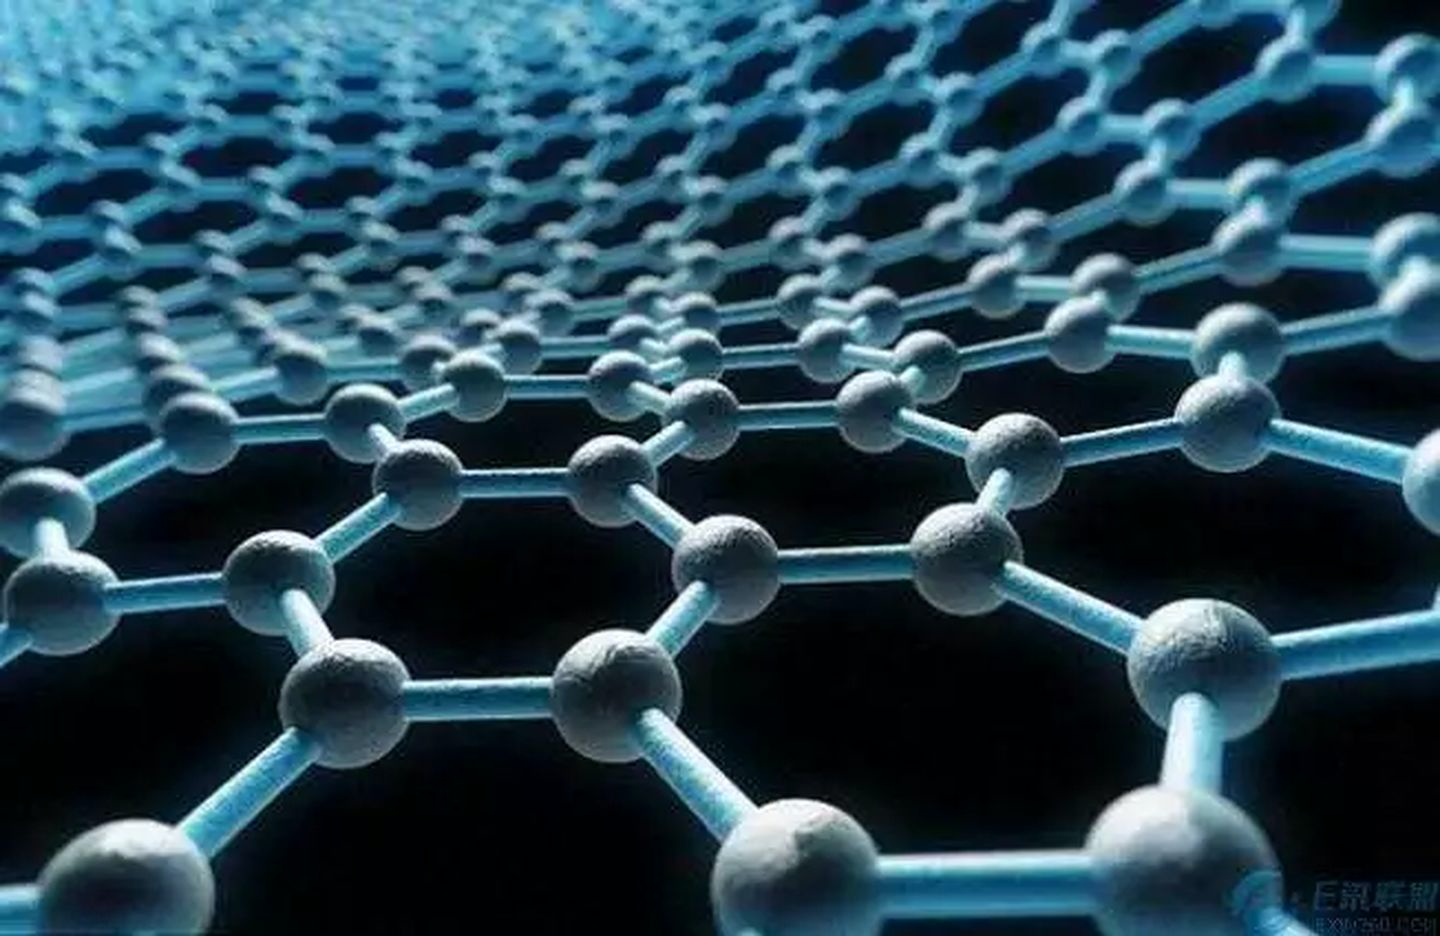 Van-der-Waals attractive interation. A giant web composed to defend dusts from penetration.